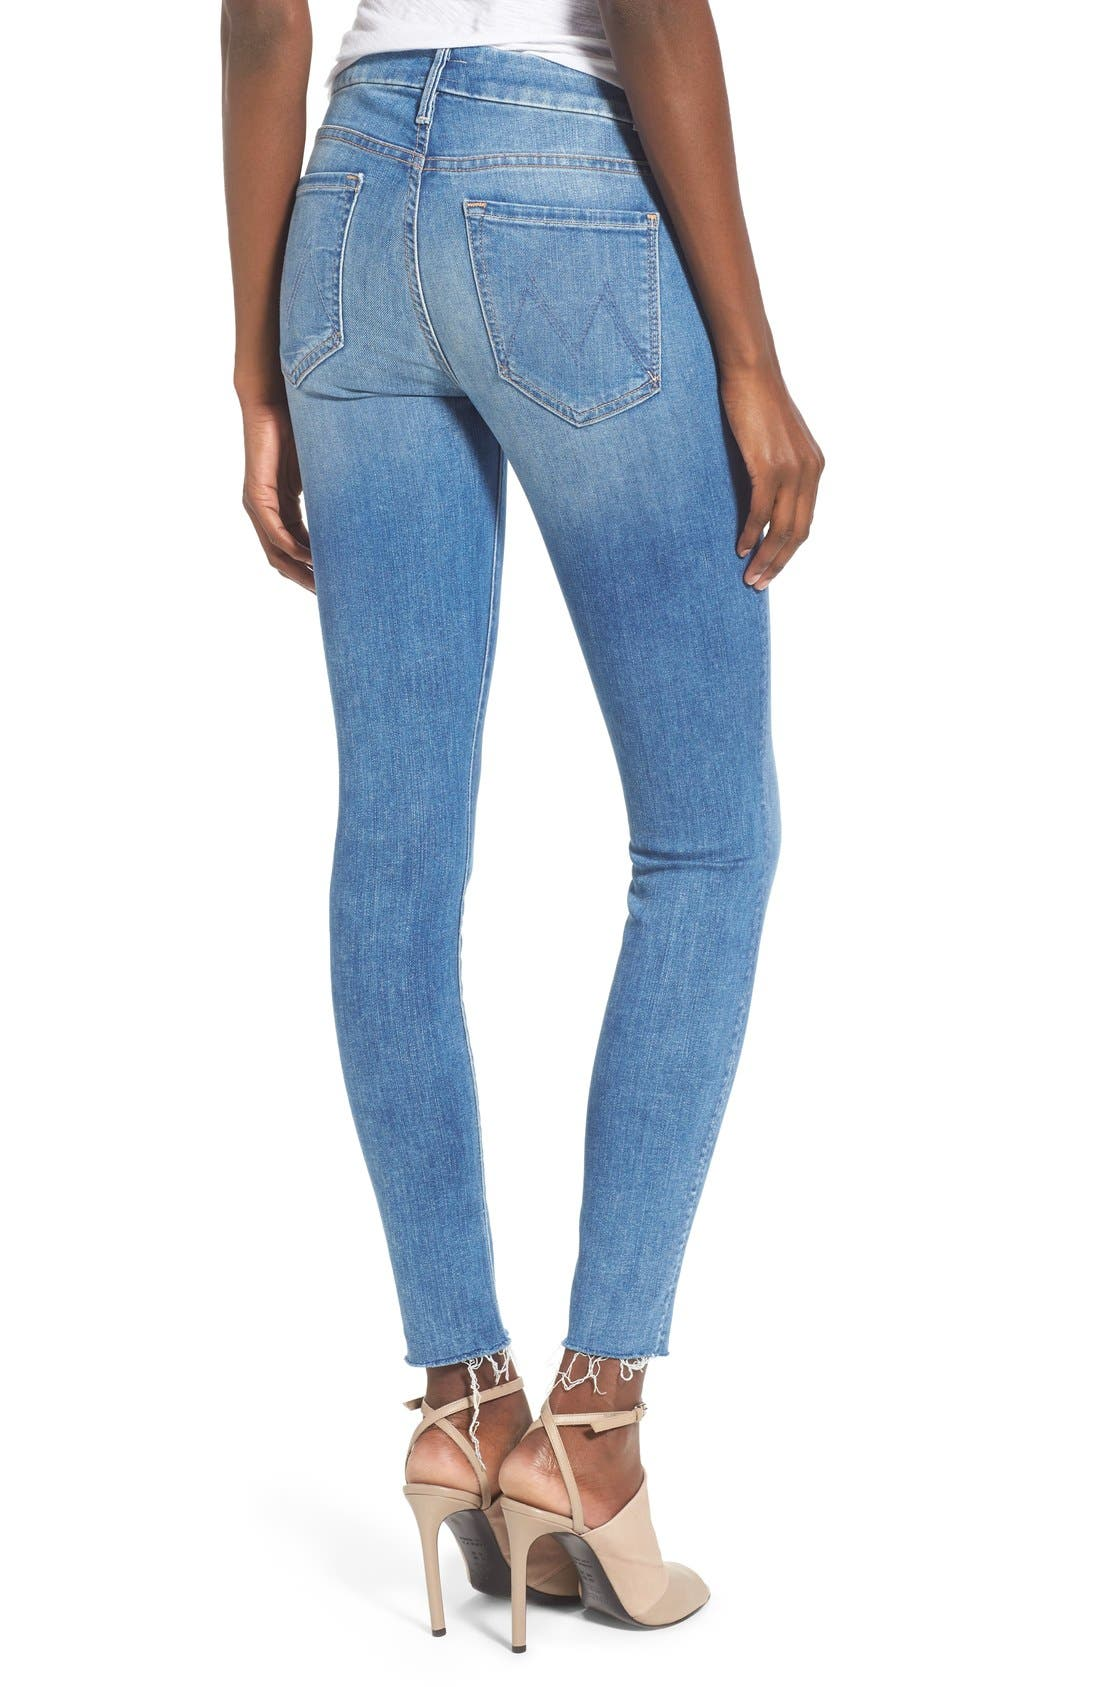 'The Looker' Fray Ankle Jeans,                             Alternate thumbnail 7, color,                             BIRDS OF PARADISE